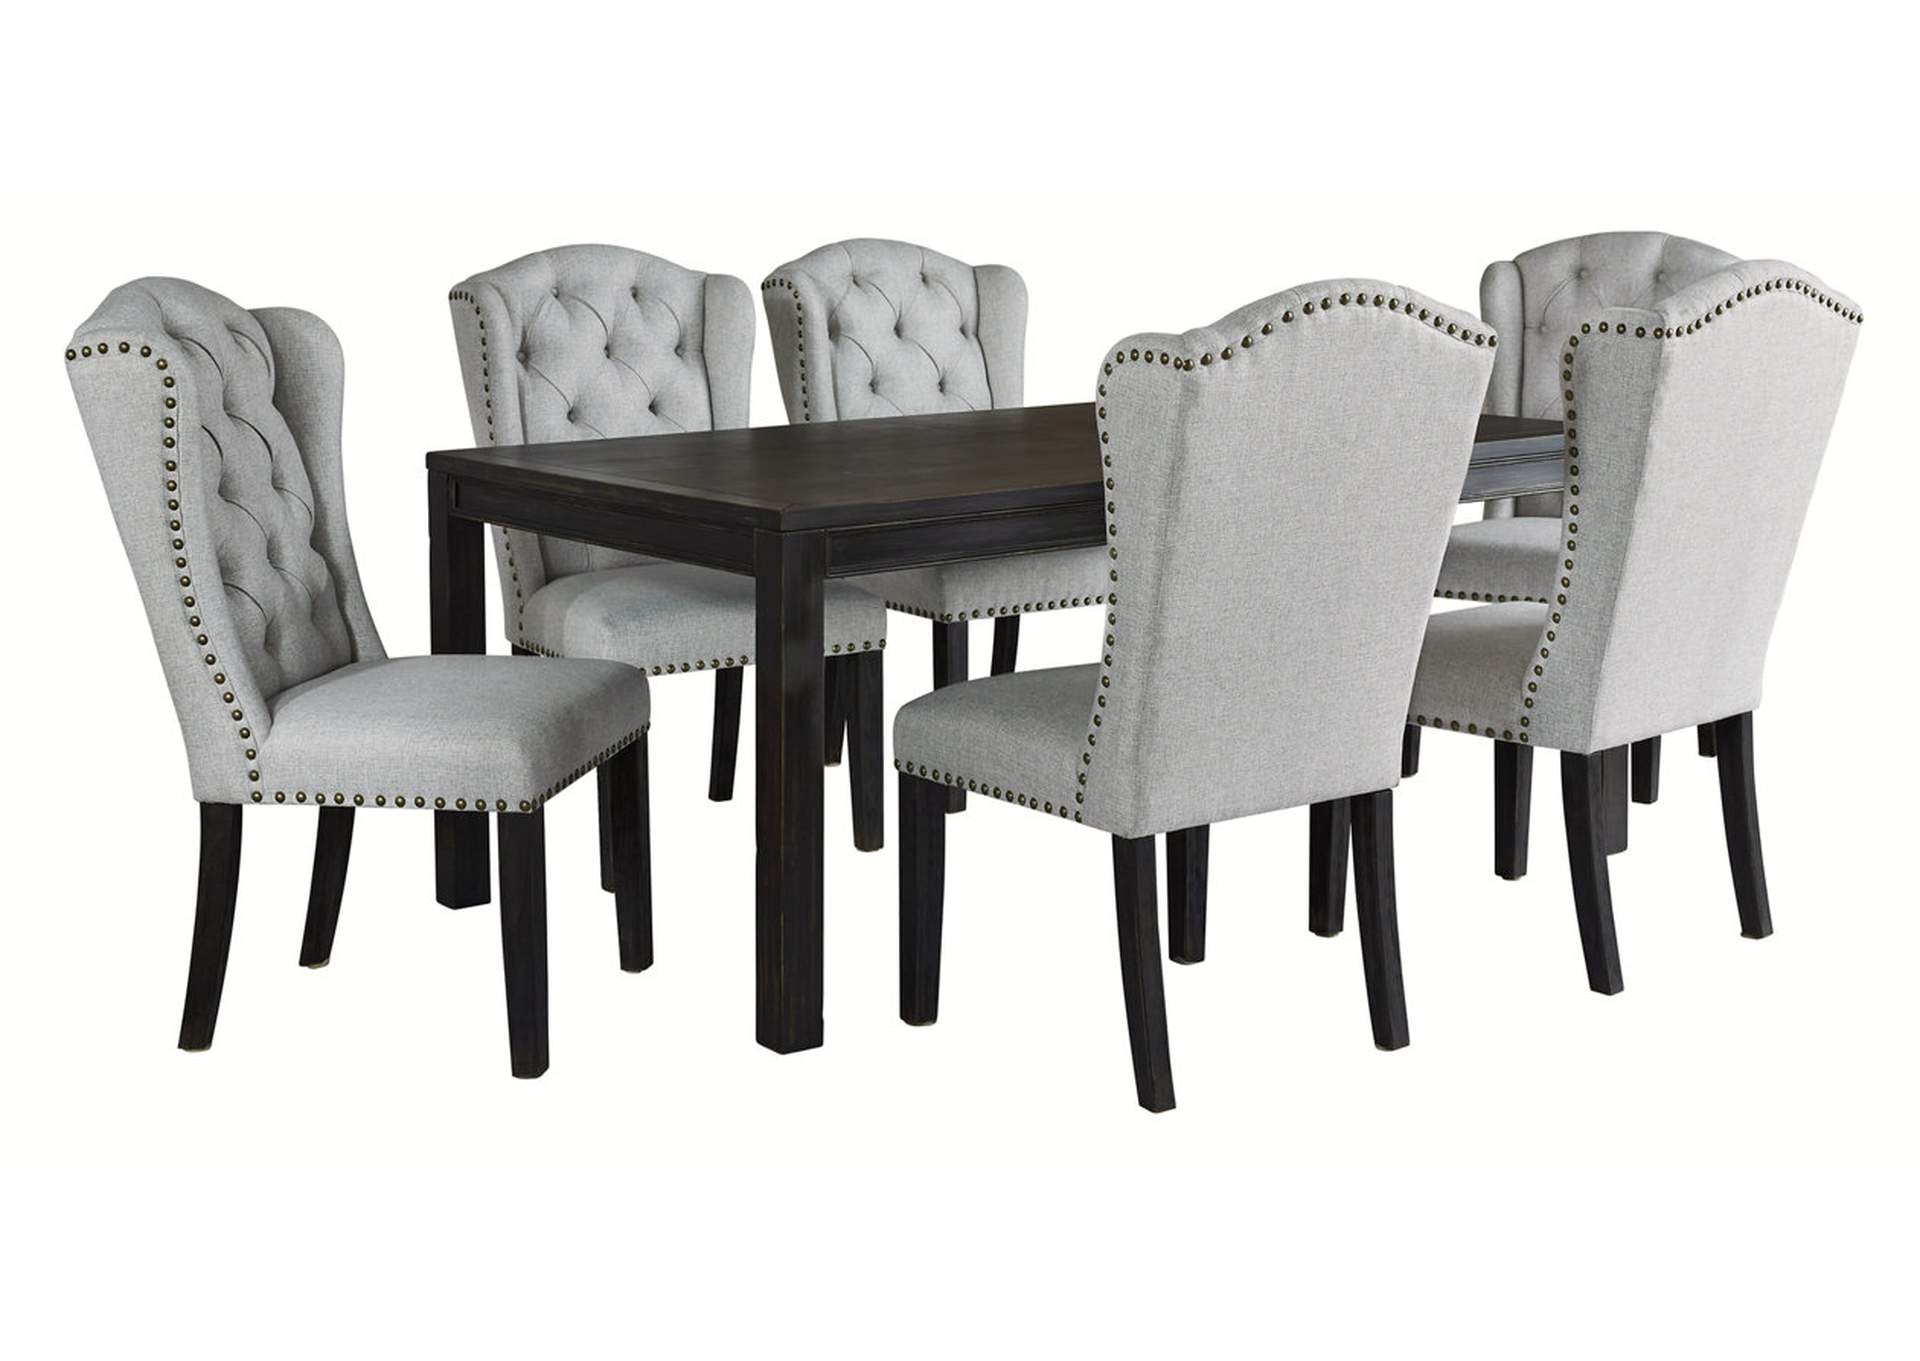 Jeanette 7 Piece Dining Table And Chairs Ashley Furniture Homestore Independently Owned And Operated By Best Furn Appliances I